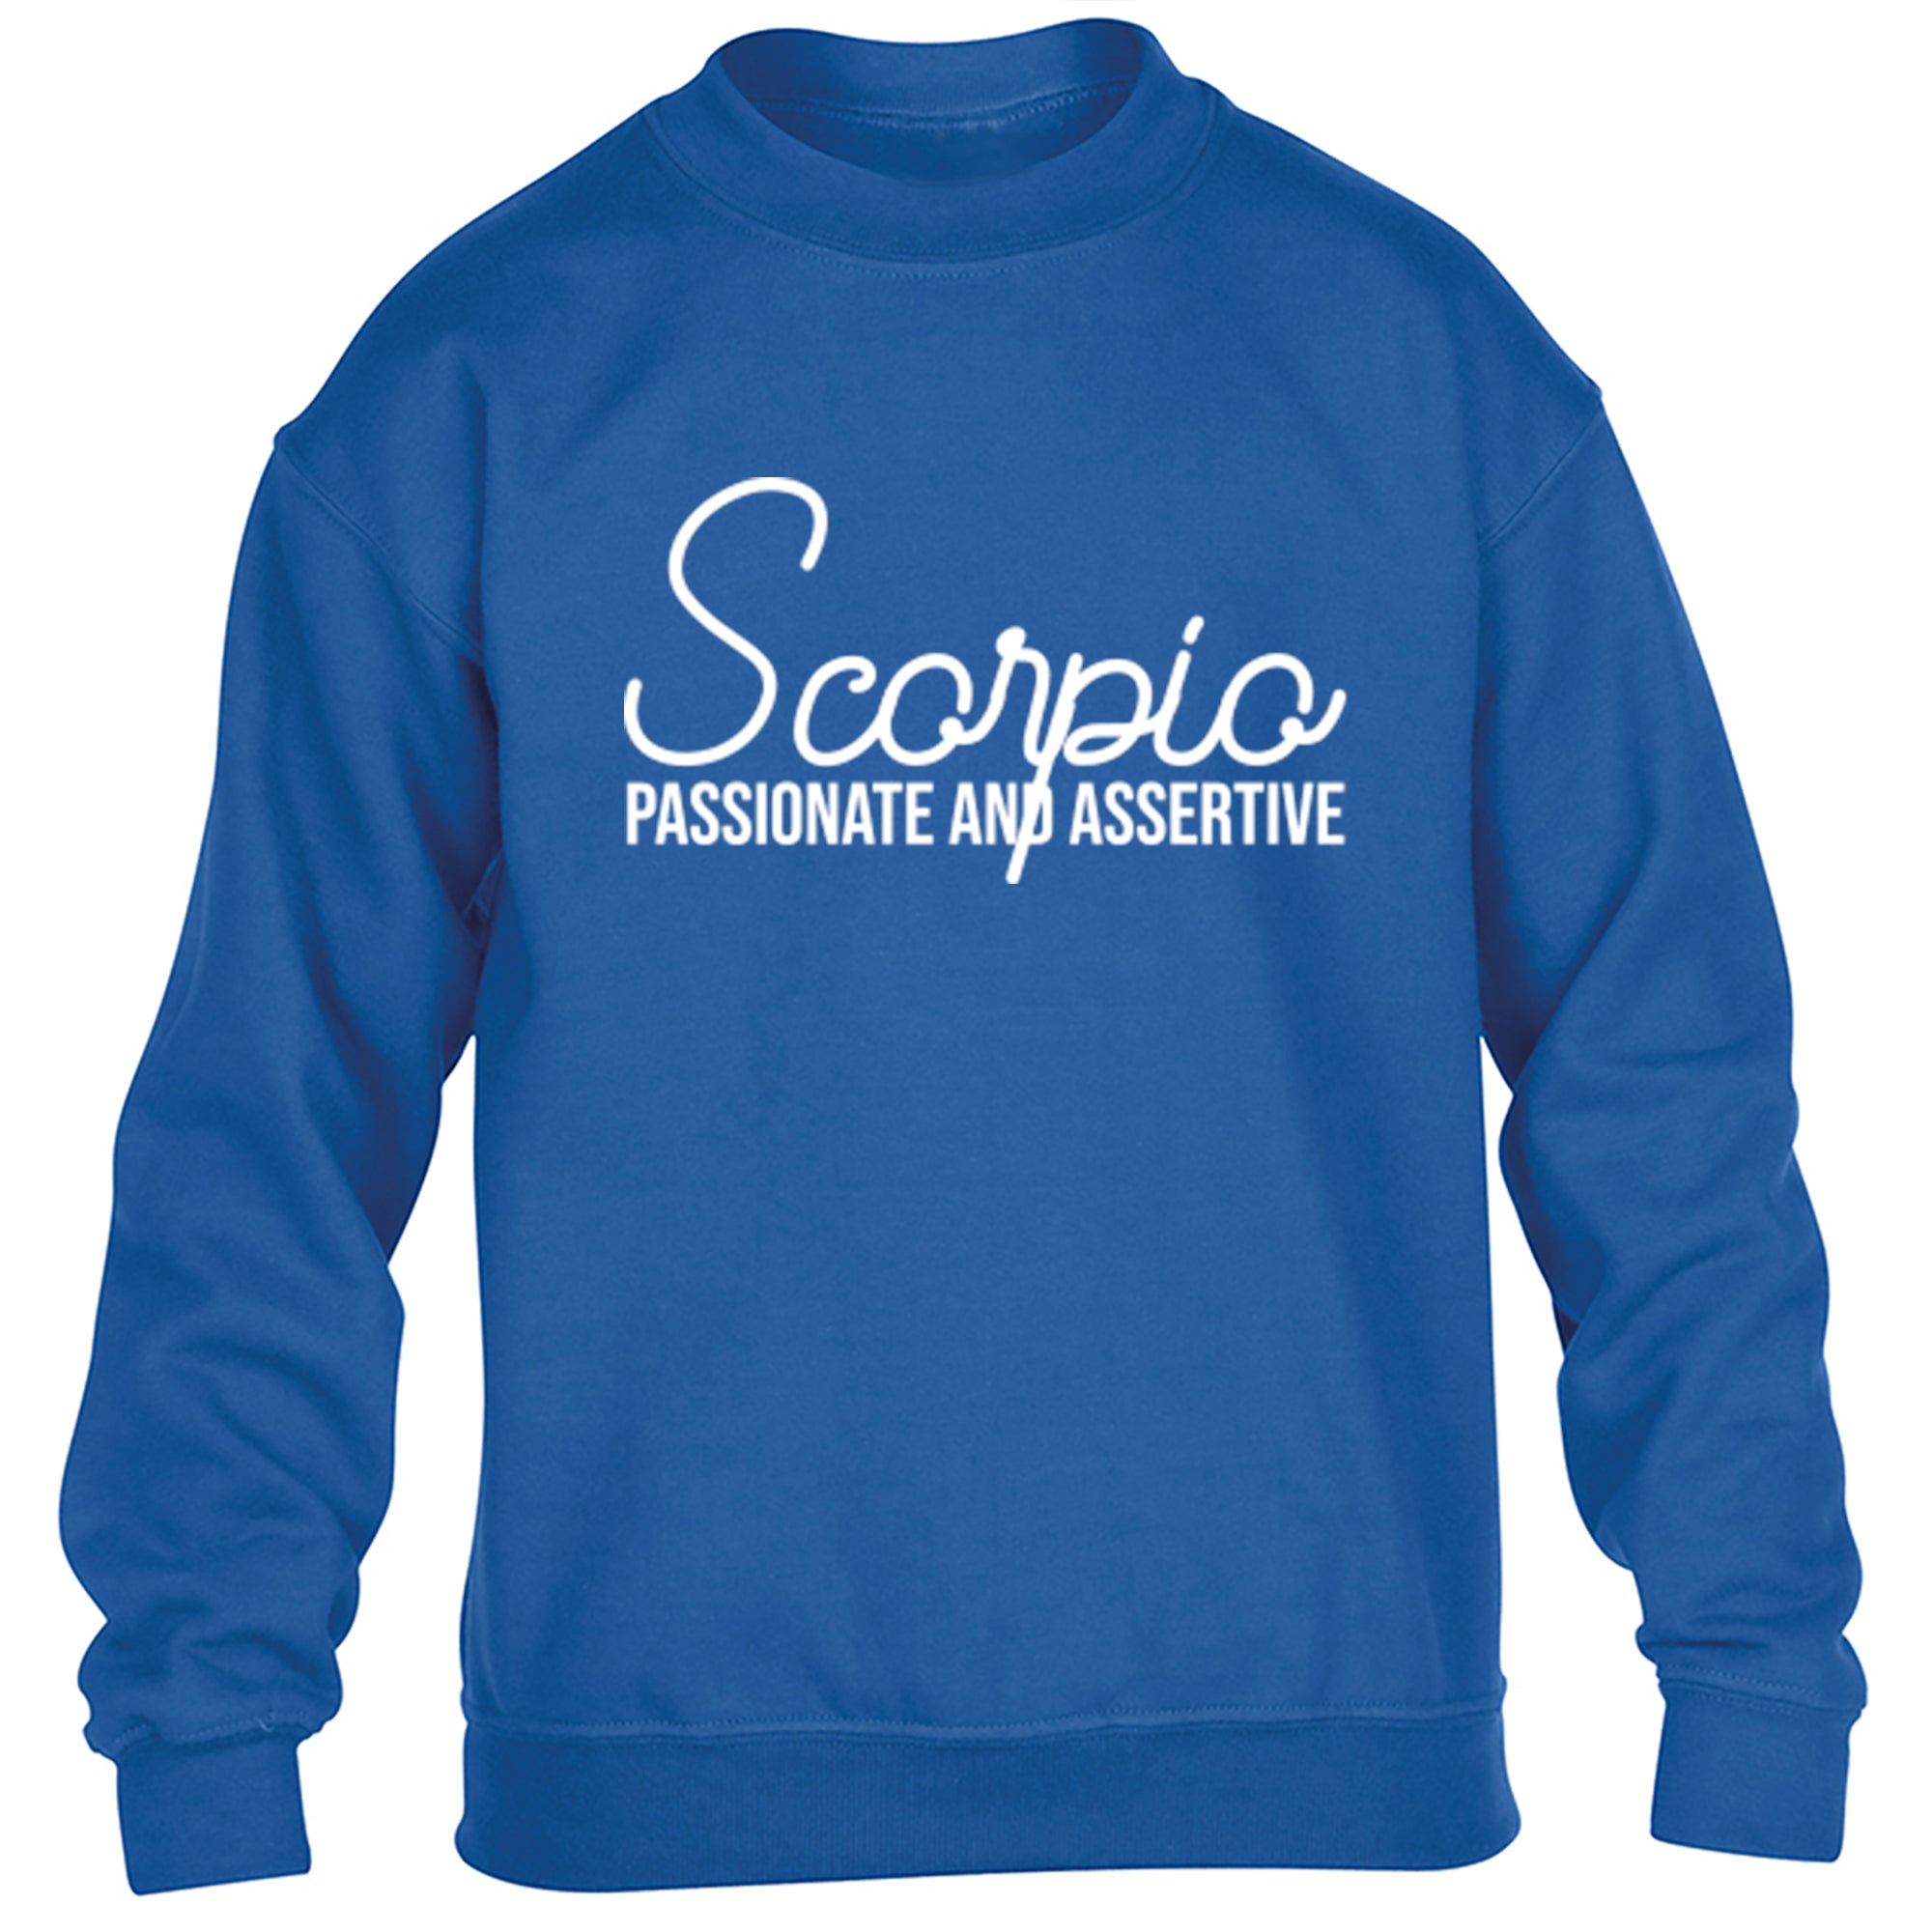 Scorpio, Passionate And Assertive Childrens Ages 3/4-12/14 Unisex Jumper S0443 - Illustrated Identity Ltd.